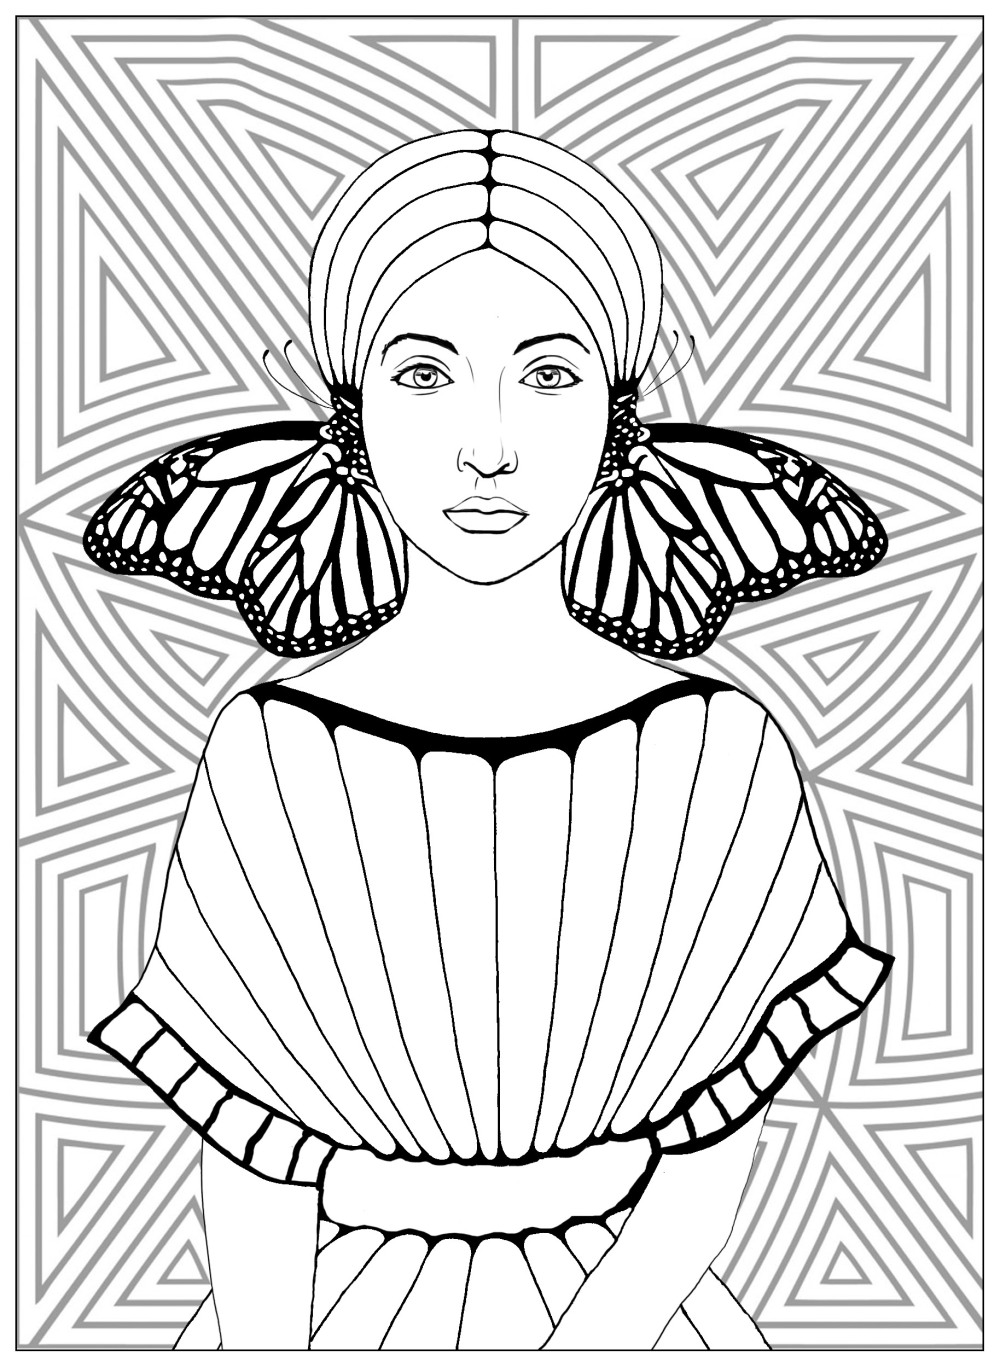 coloring-page-butterflies-girl